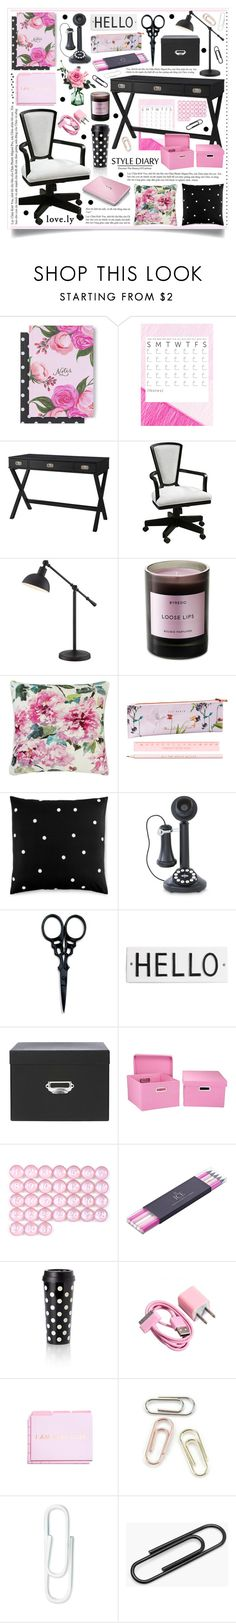 """Rose & Black Office Decor"" by hmb213 ❤ liked on Polyvore featuring interior, interiors, interior design, home, home decor, interior decorating, Threshold, Uttermost, Home Decorators Collection and Byredo"